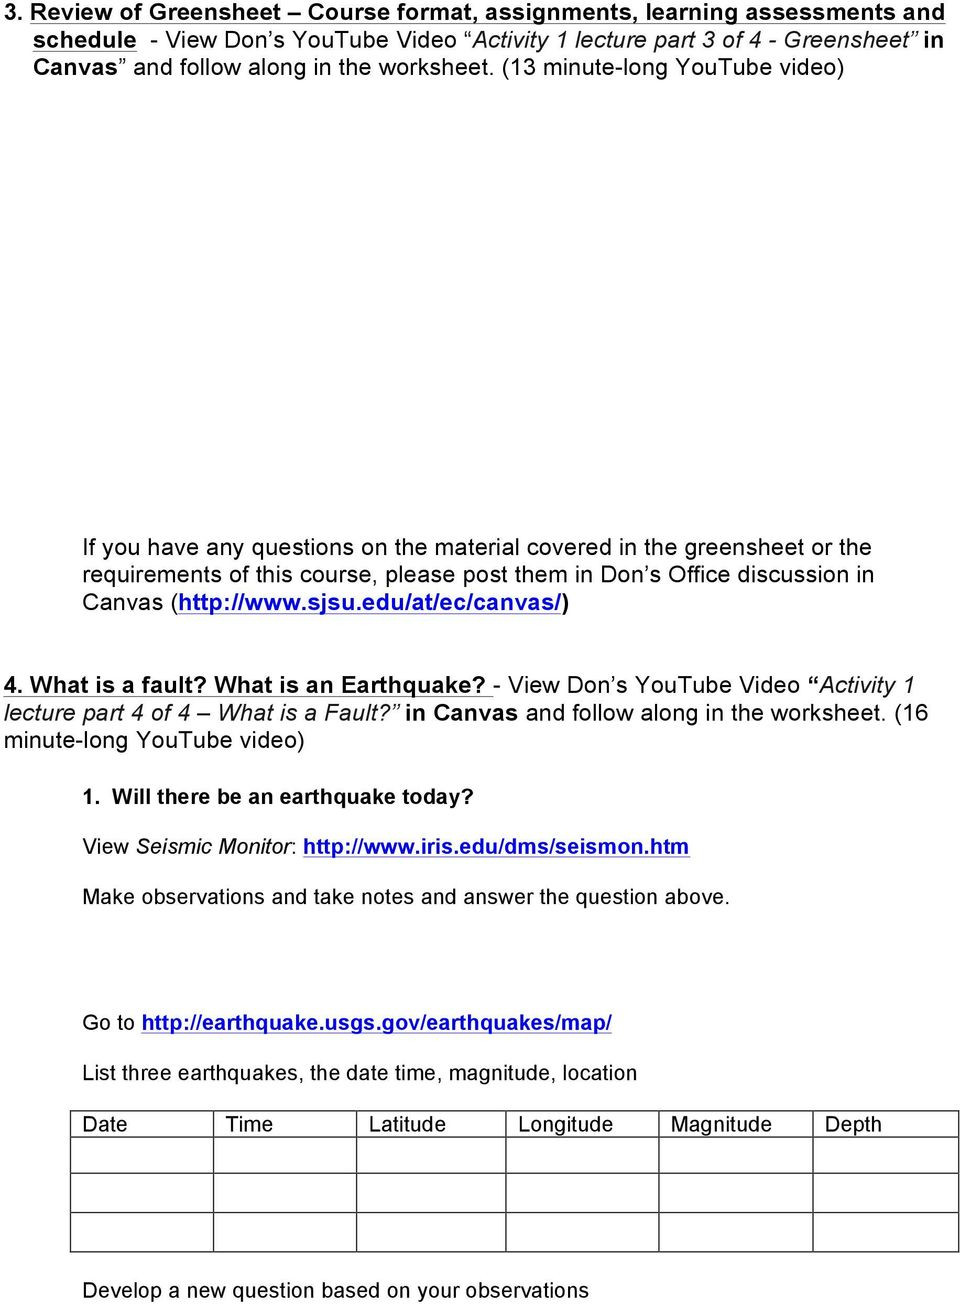 Earthquake Worksheets Middle School Geology 112 Earthquakes Activity 1 Worksheet Introduction